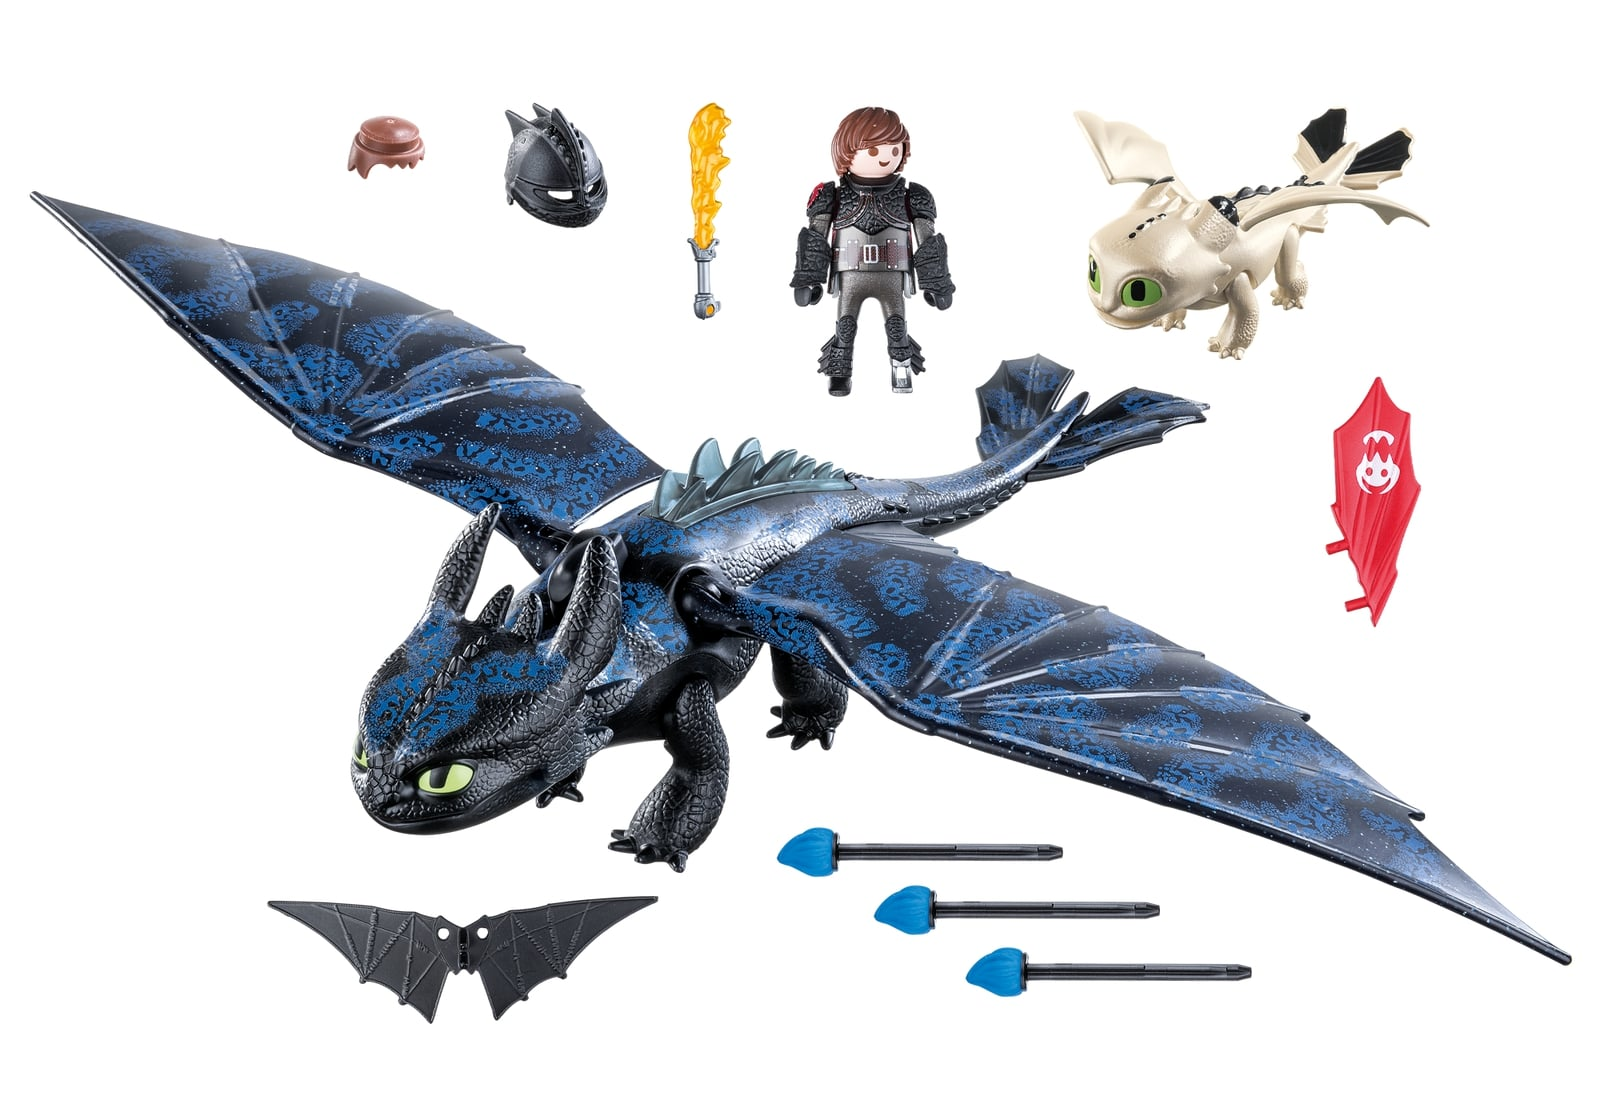 Hiccup, toothless si pui de dragon playmobil dragons - 2